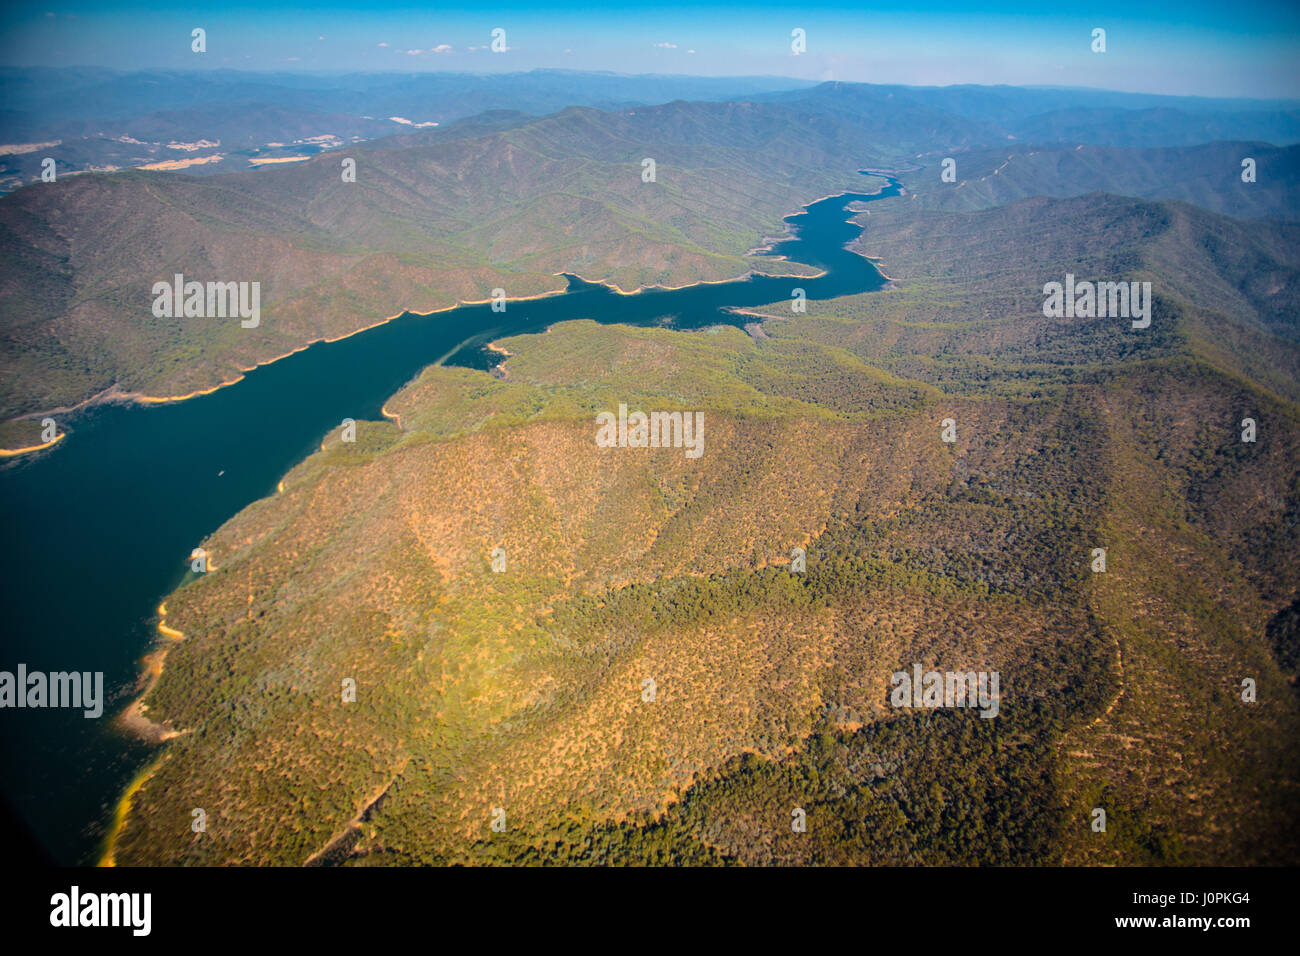 An aerial shot of Lake Dartmouth in the Great Dividing Range, Australia - Stock Image